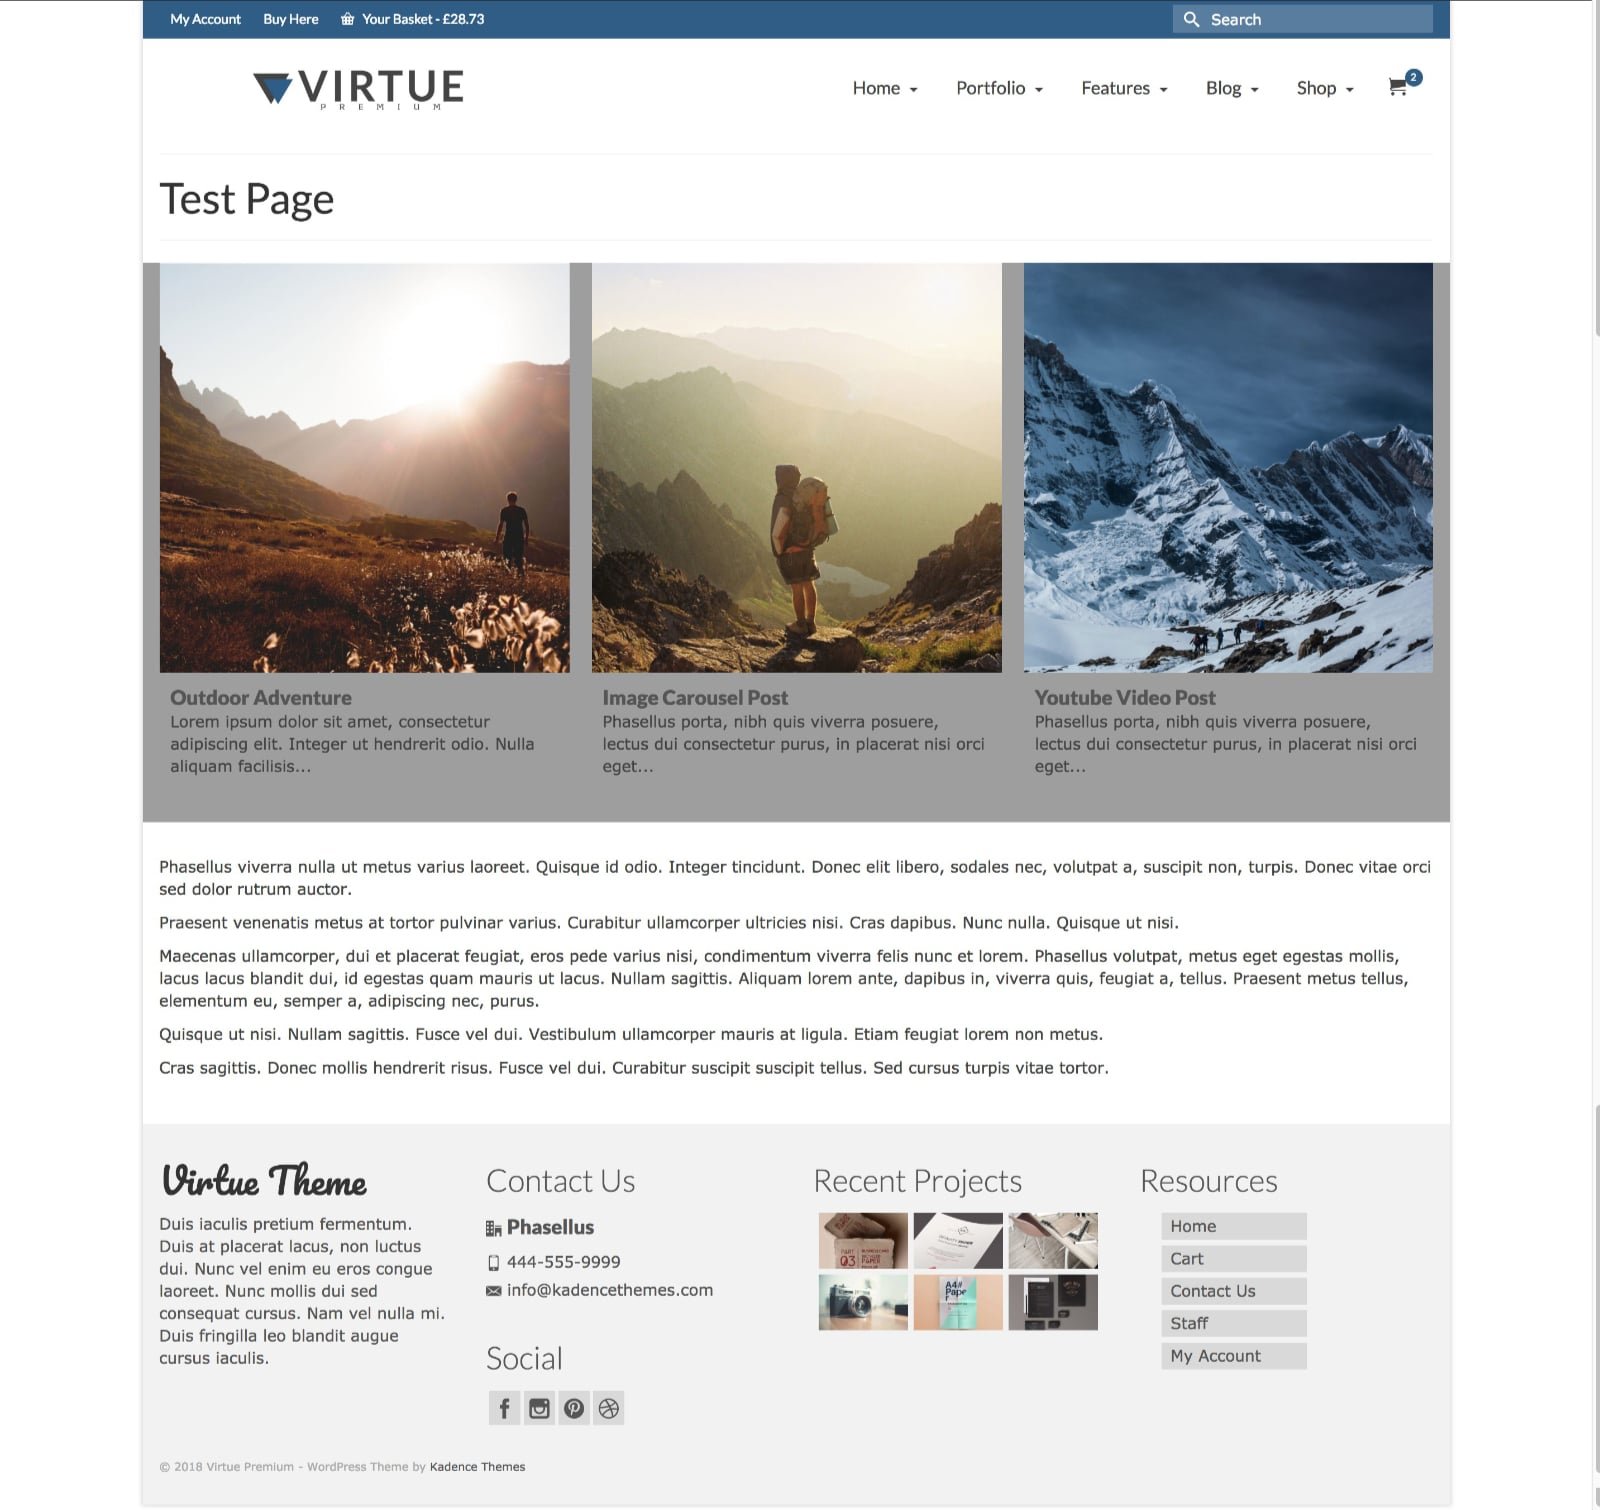 page-builder-fullwidth-container-.wrap